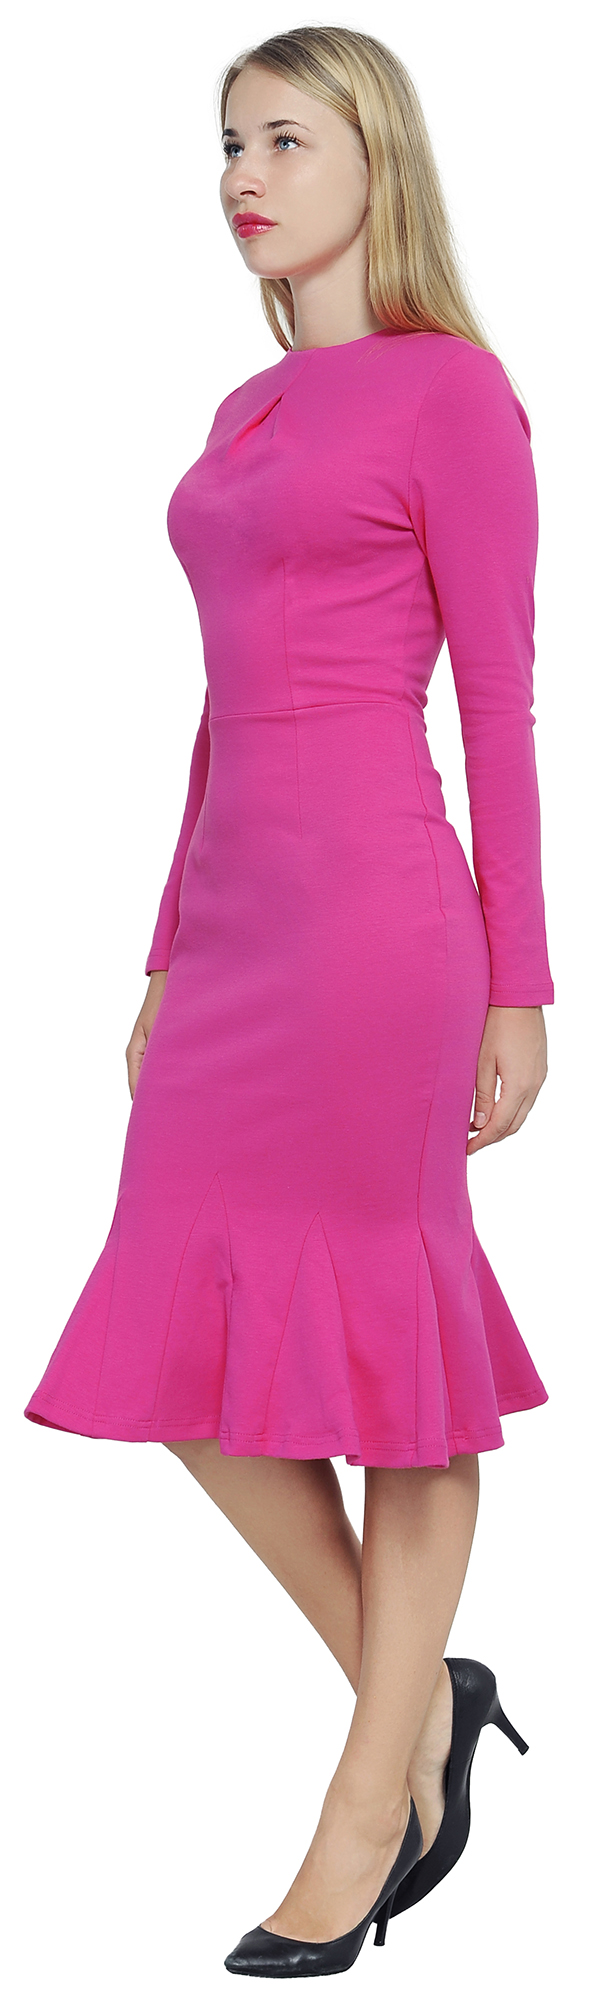 MARYCRAFTS WOMEN\'S ELEGANT DRESS PARTY COCKTAIL OFFICE WORK FISHTAIL ...